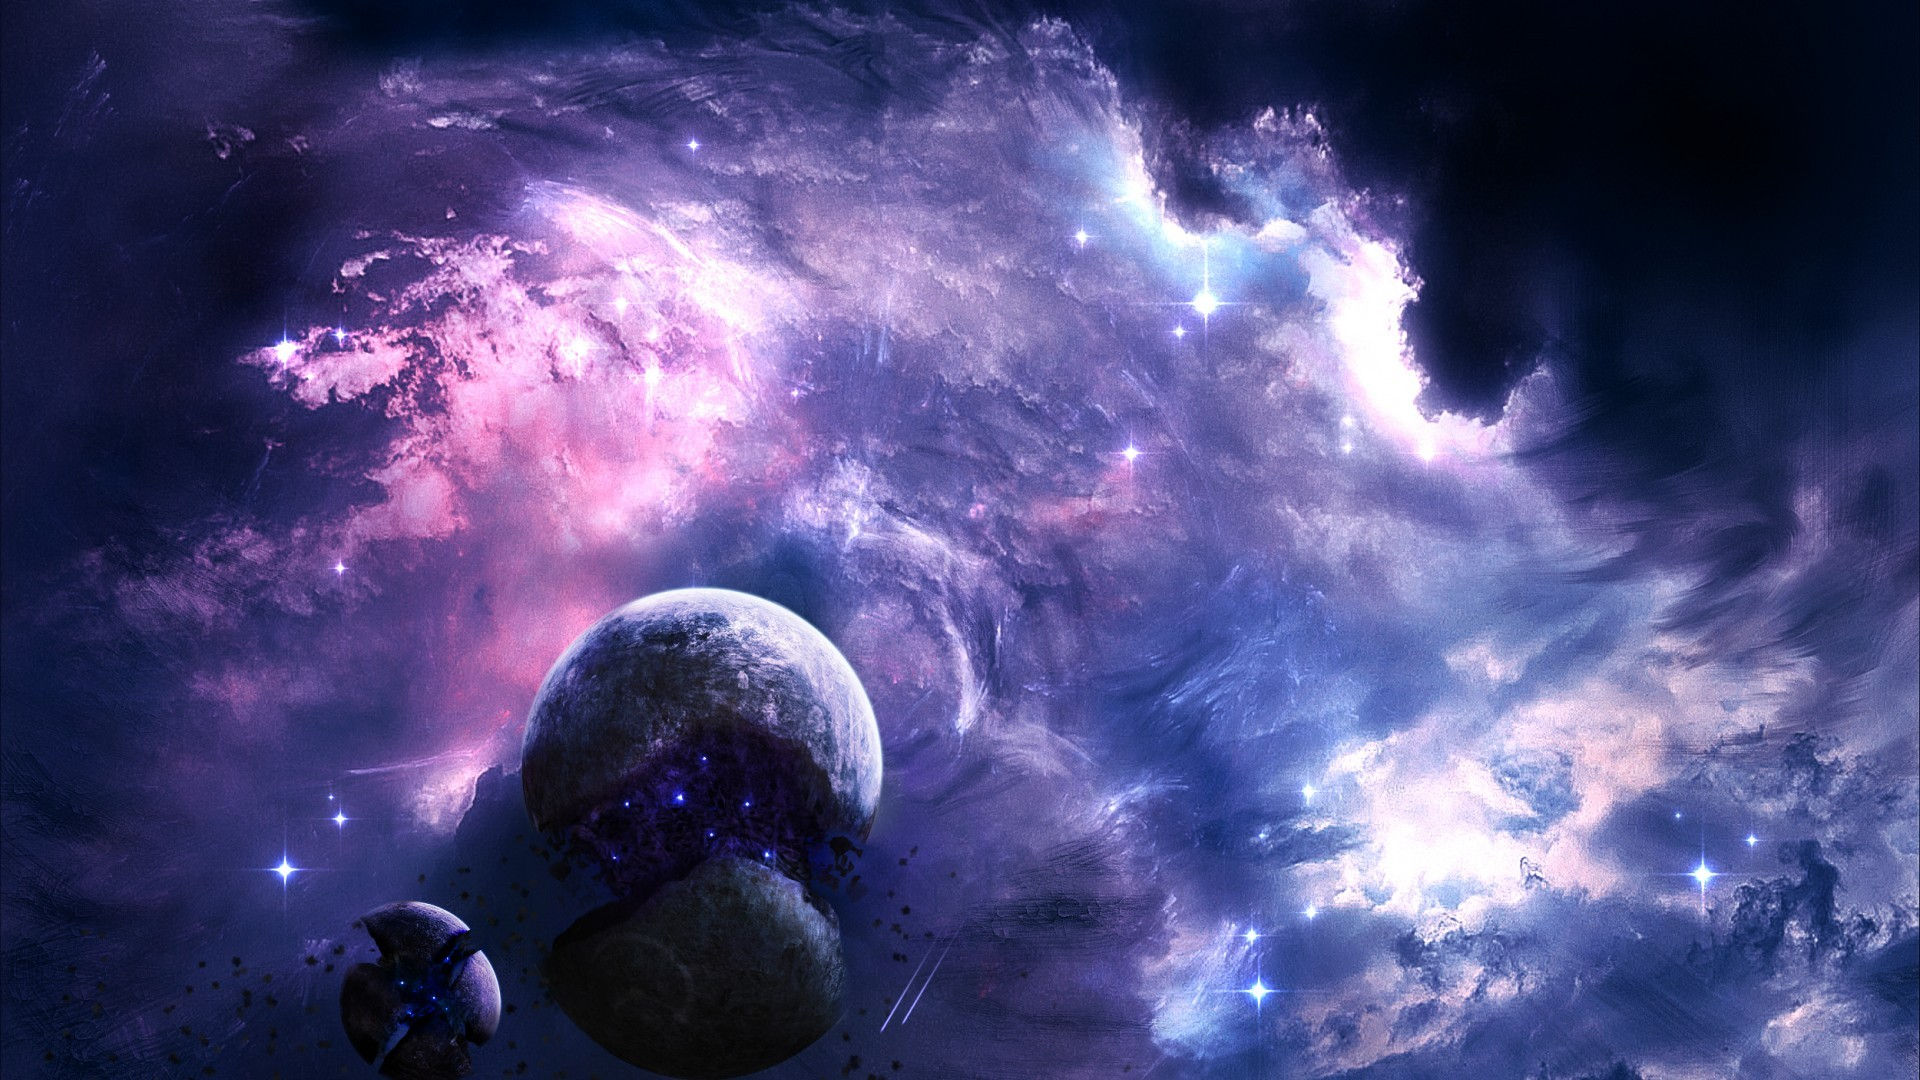 21+ hd space backgrounds ·① download free cool high resolution